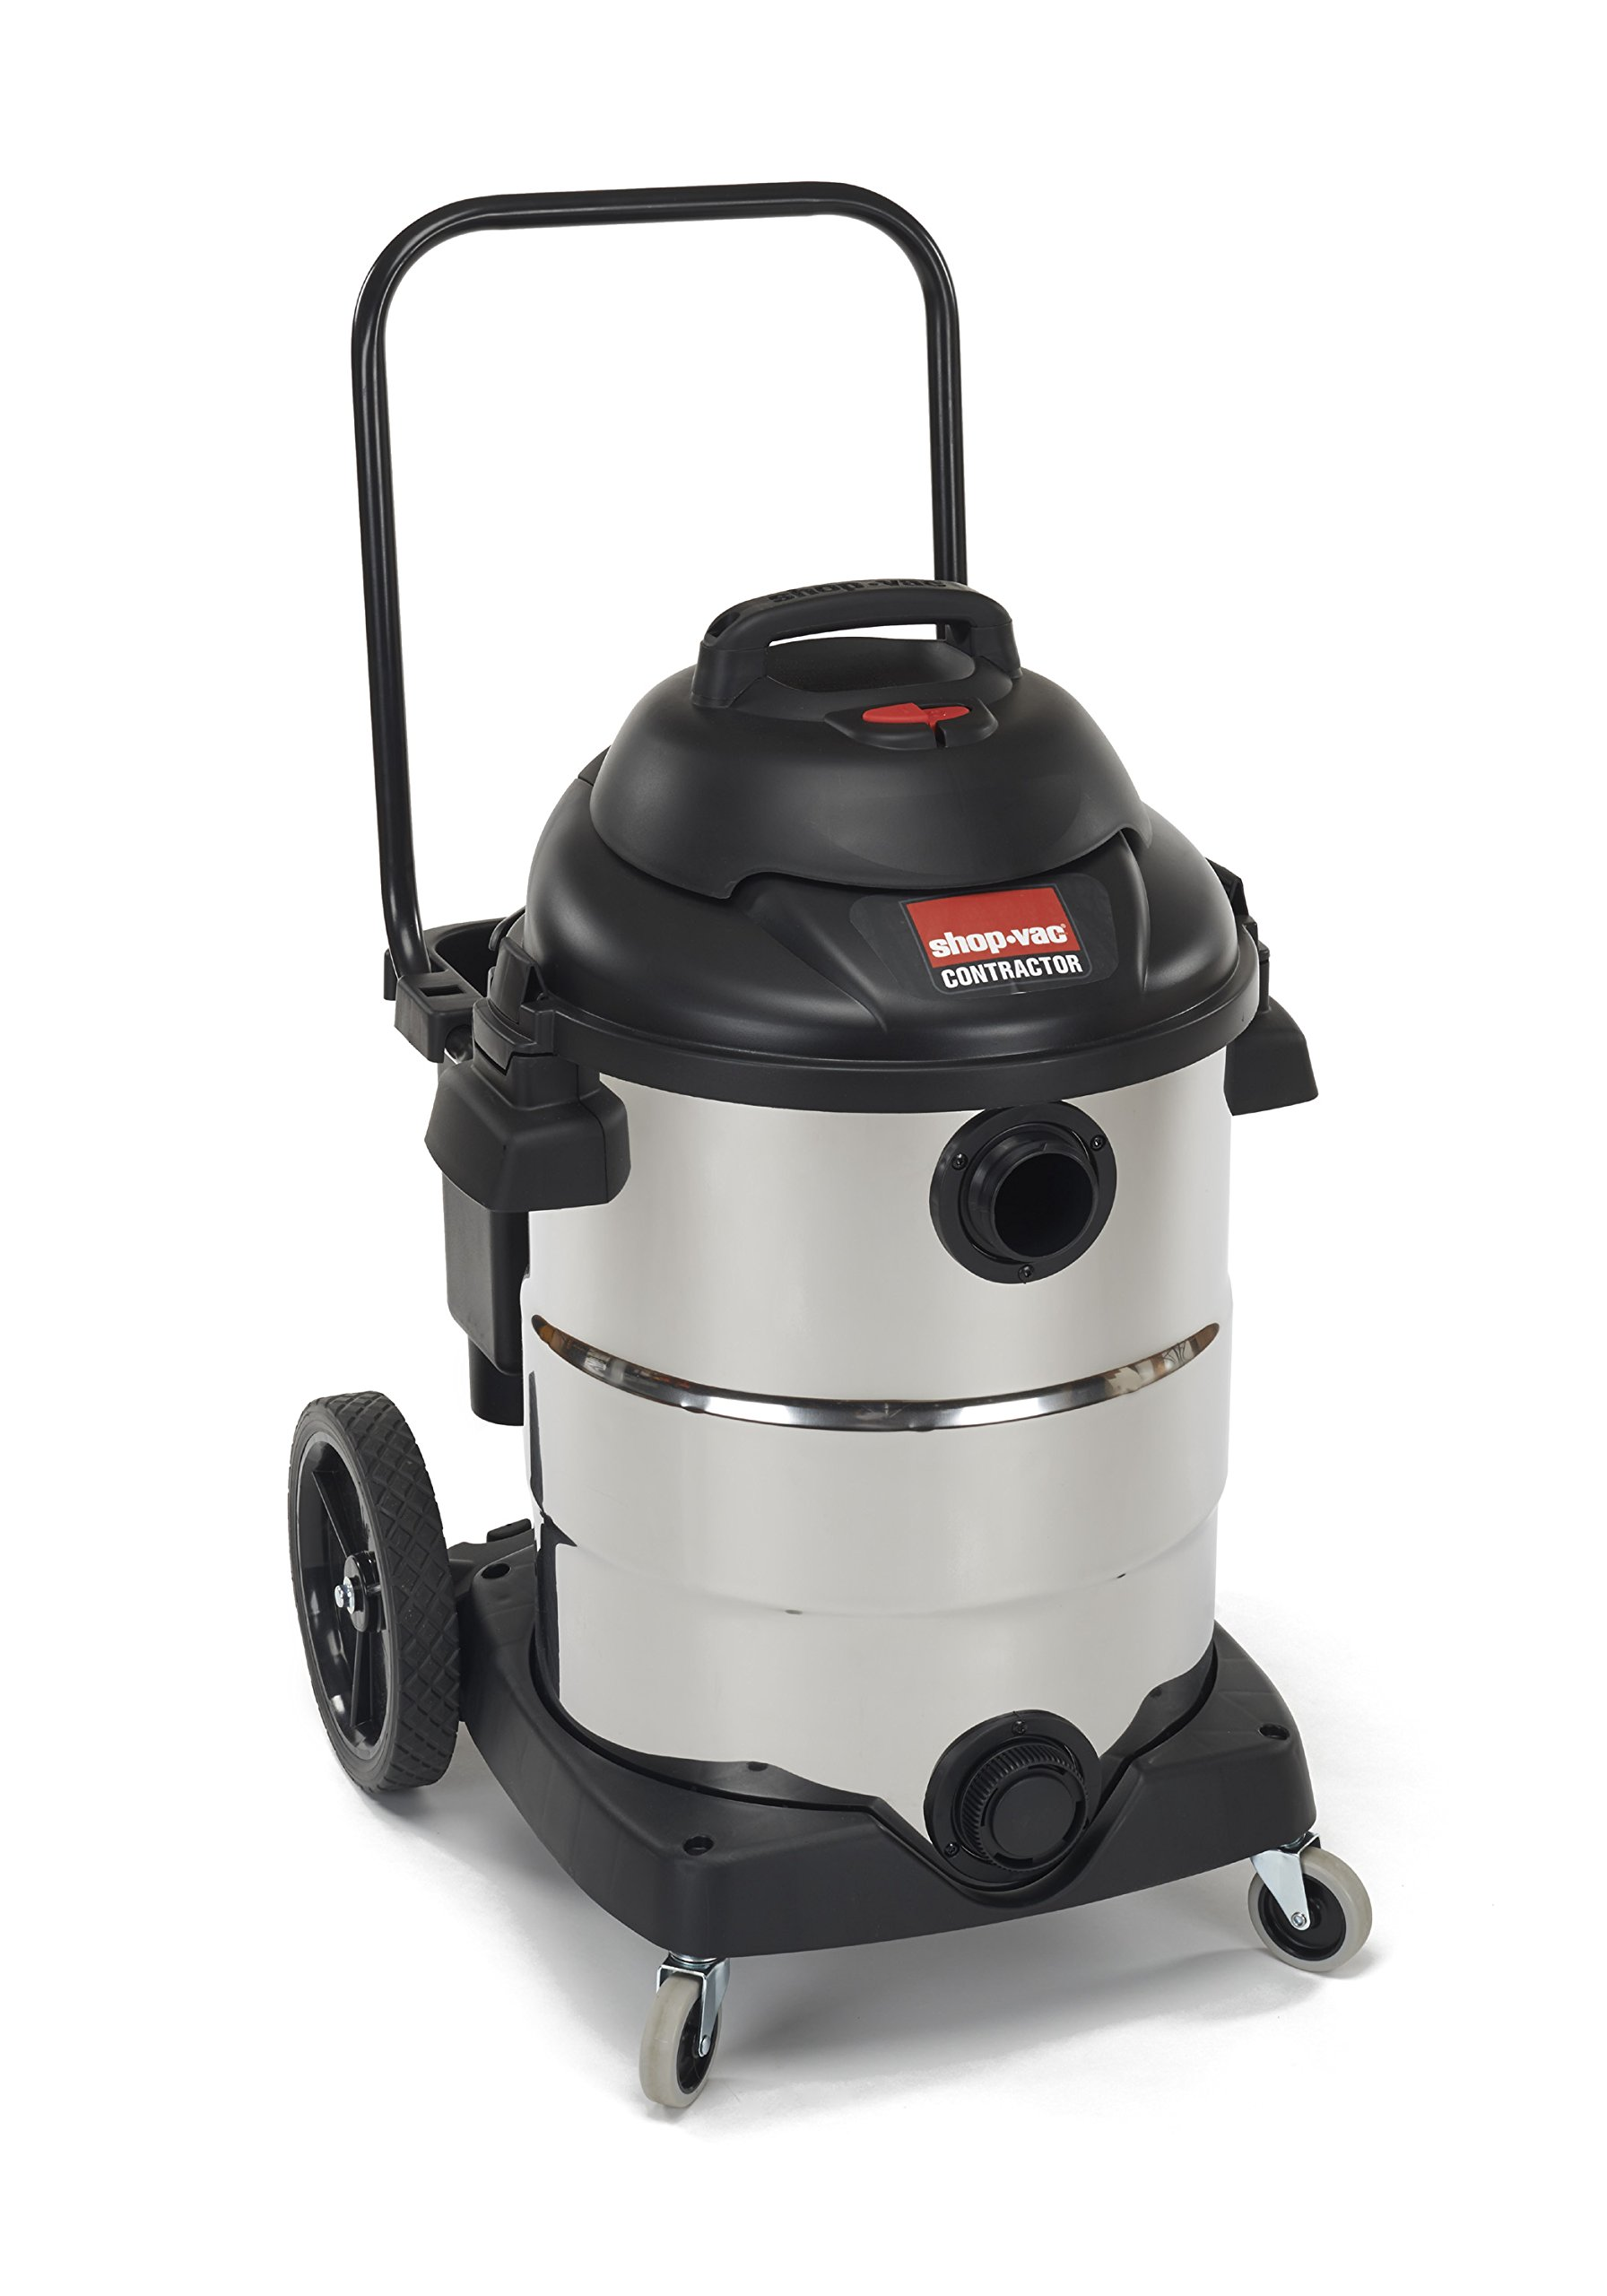 Shop-Vac 9626610 6.5 Peak HP Stainless Steel Wet Dry Vacuum, 15-Gallon by Shop-Vac